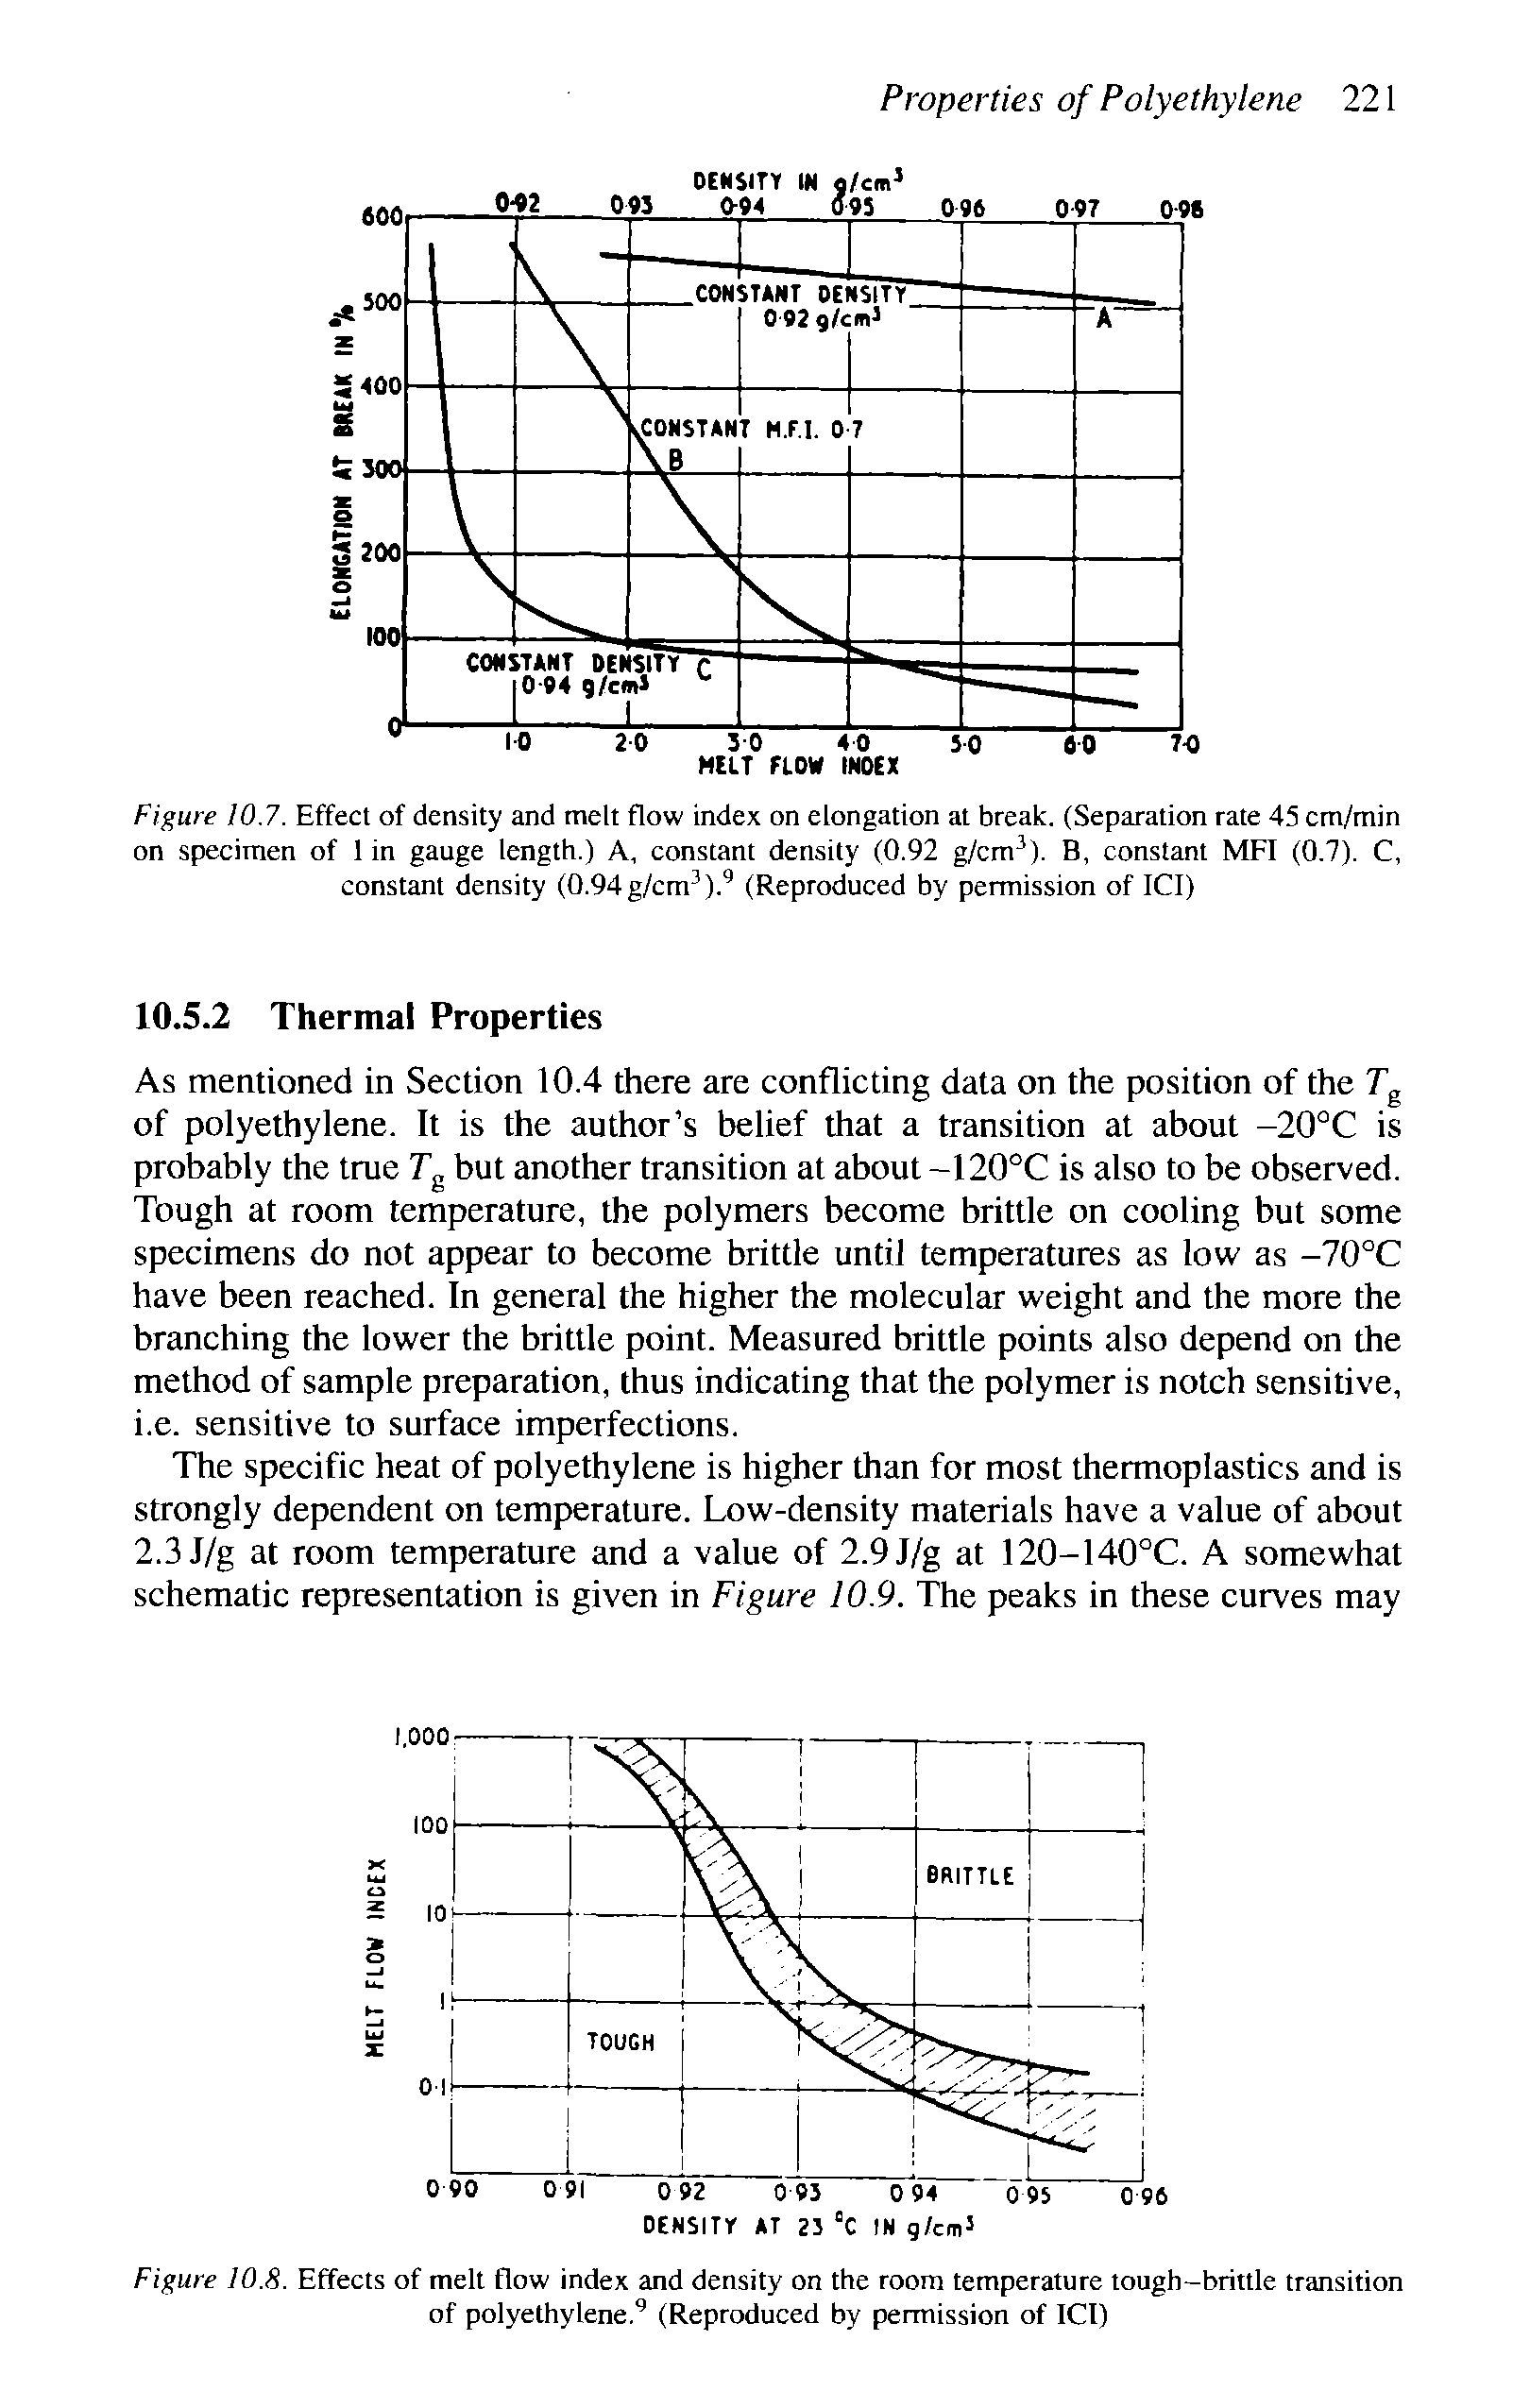 "Figure 10.8. Effects of <a href=""/info/melt_flow_index"">melt flow index</a> and density on the room <a href=""/info/brittle_tough_transition_temperature"">temperature tough-brittle transition</a> of polyethylene. (Reproduced by permission of ICI)"